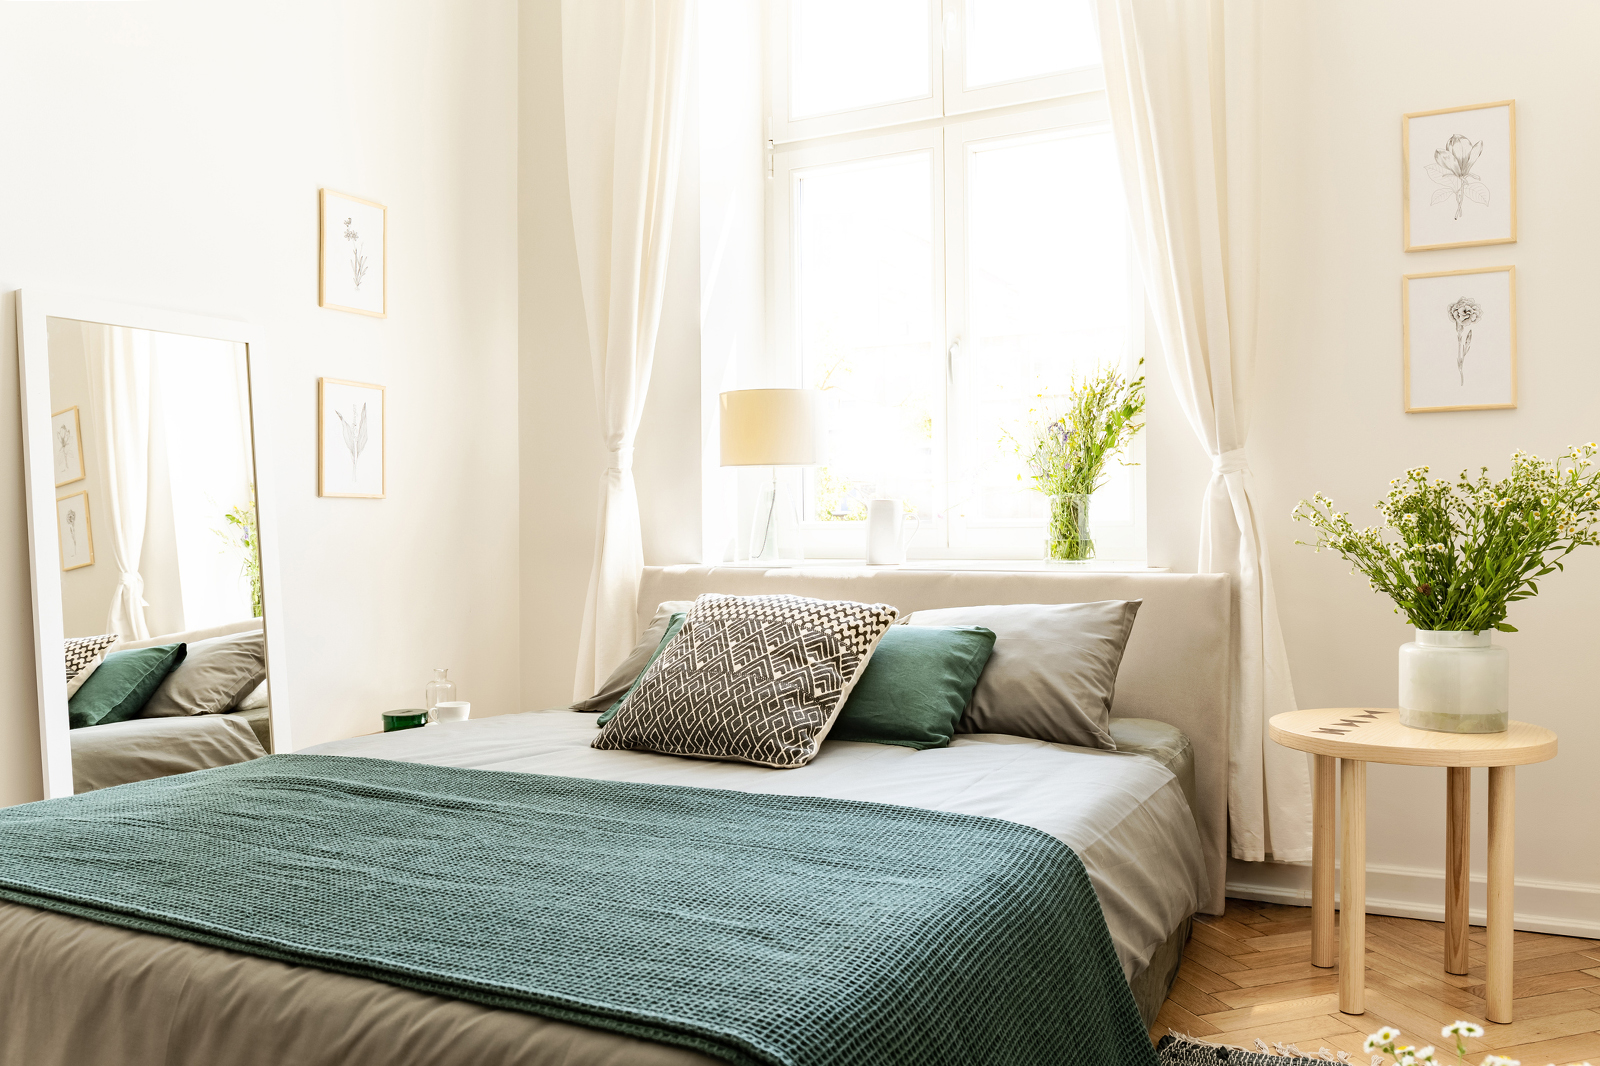 Best Practices for a Bed Under a Window in Feng Shui | LoveToKnow